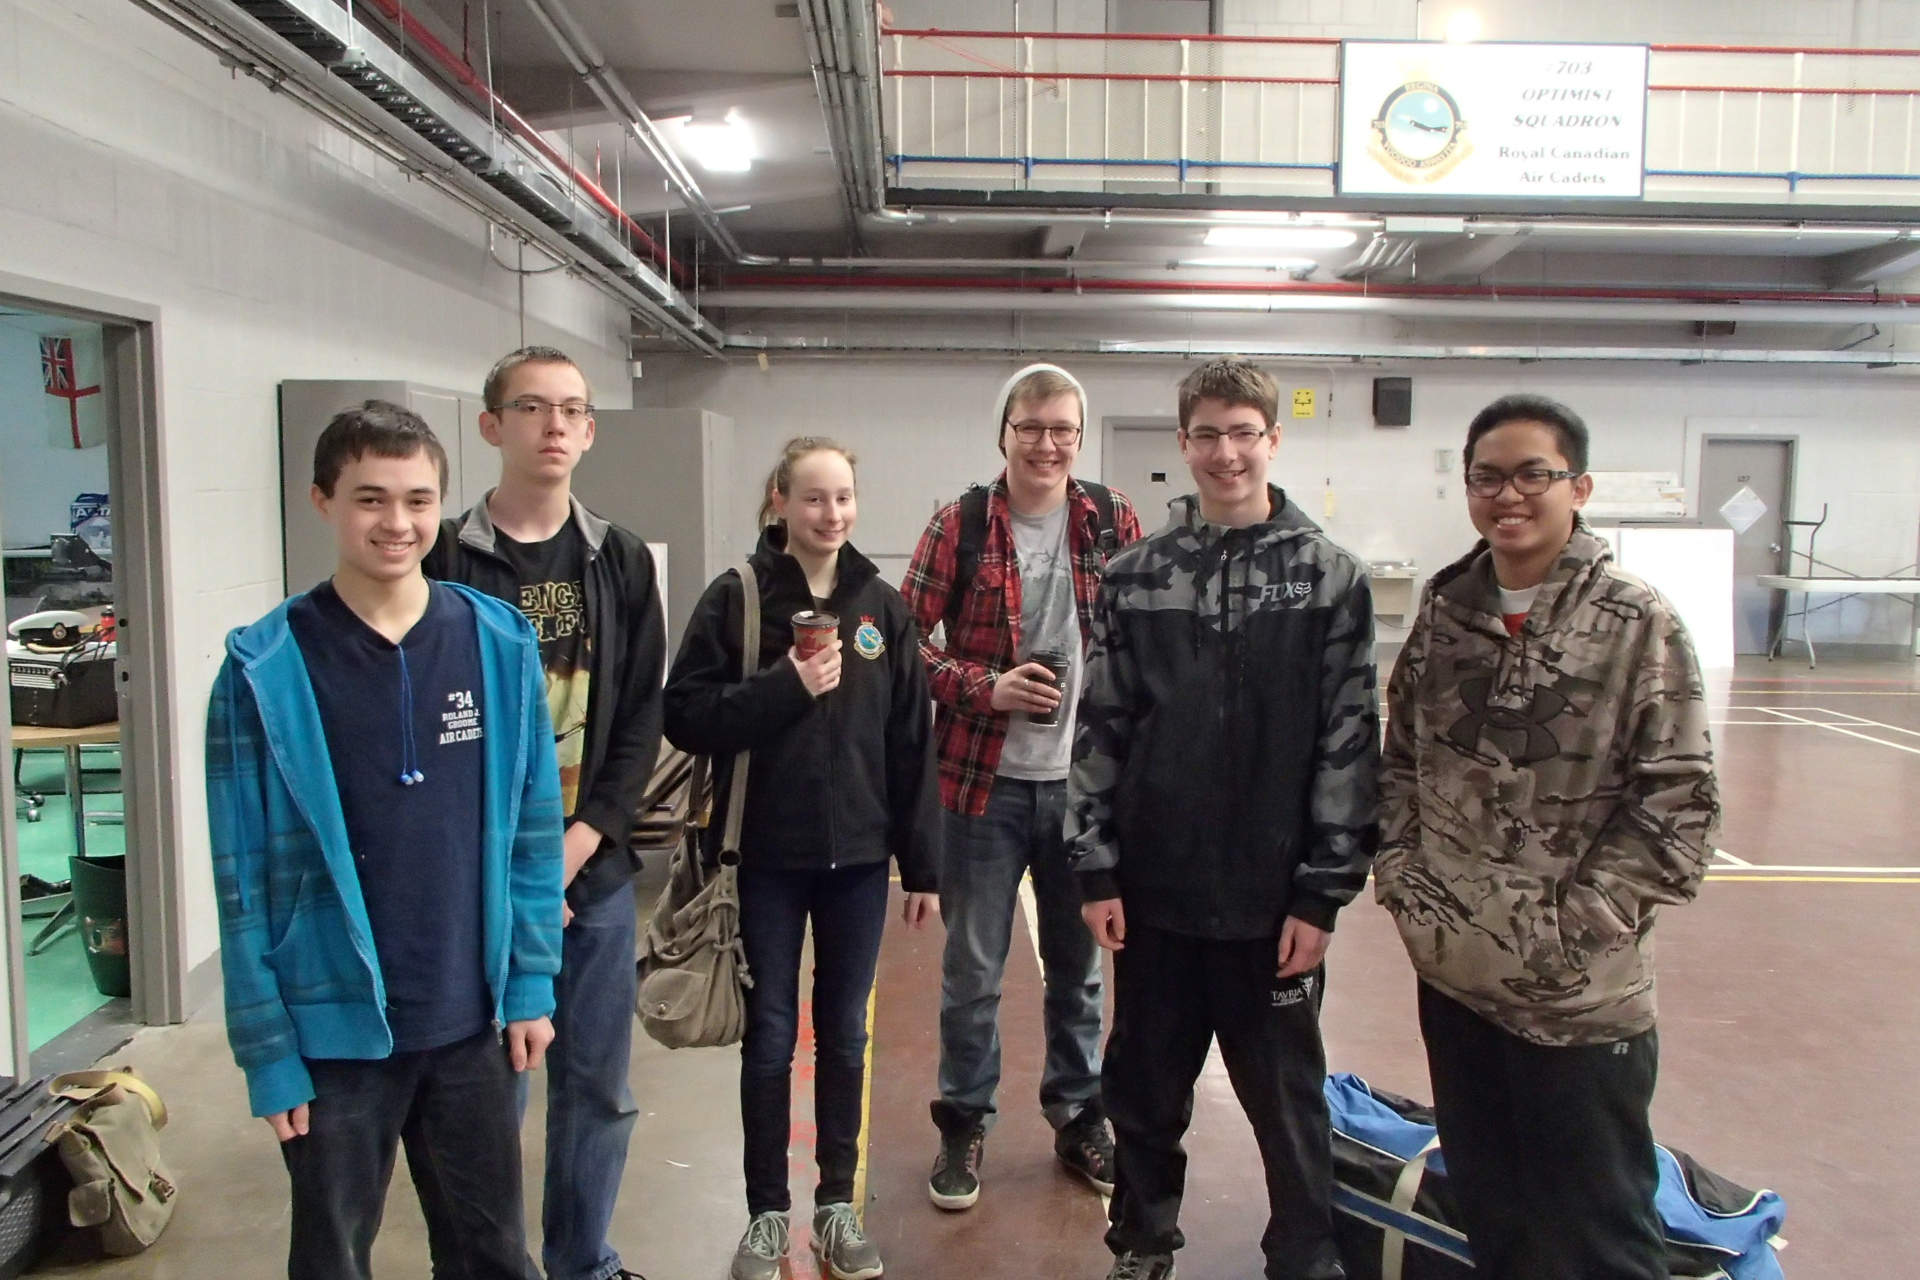 Congratulations to Markmanship Team on 2nd place at Provincials